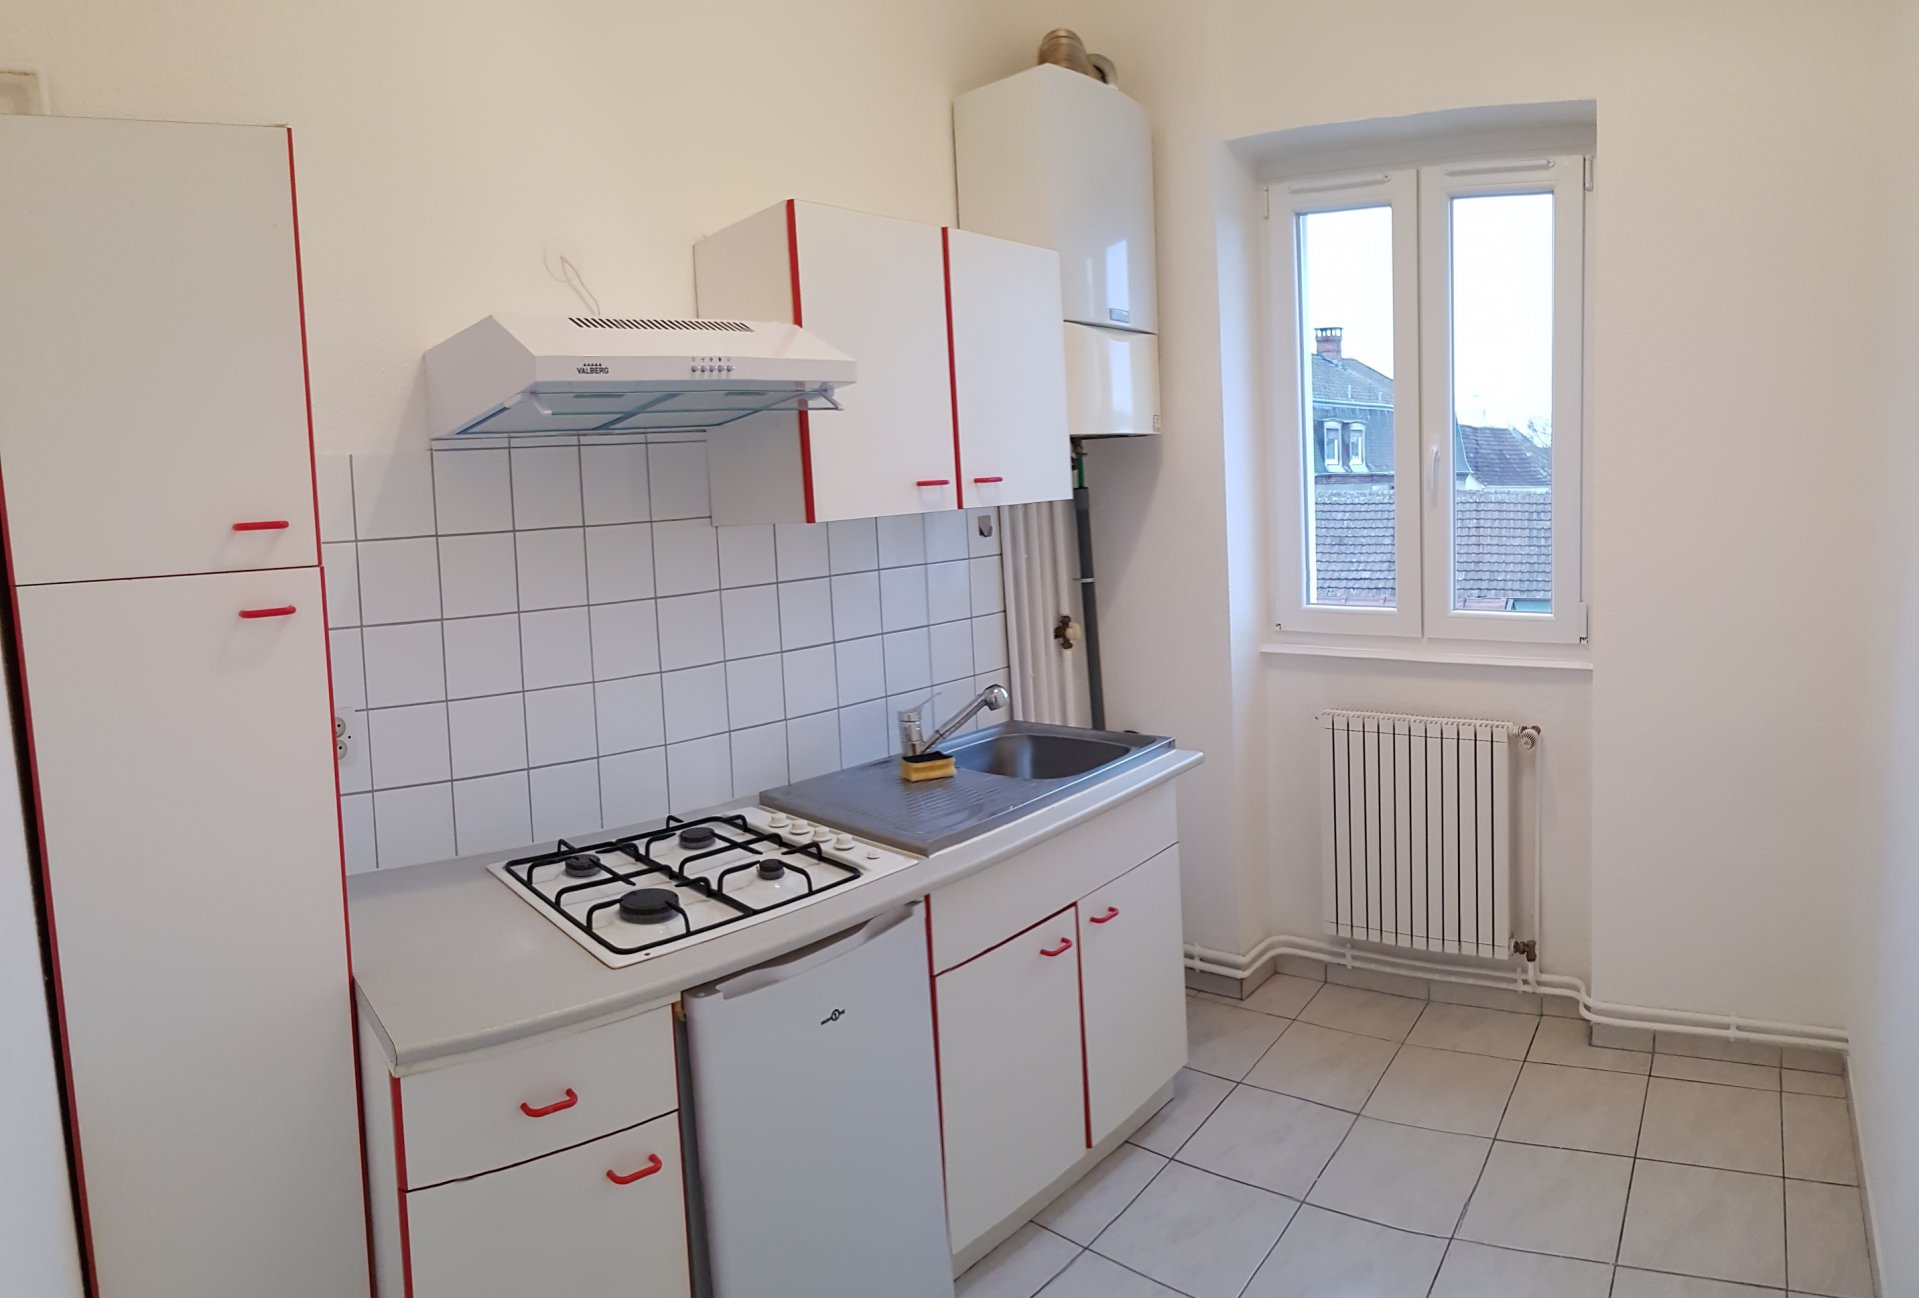 Location Mulhouse Dornach F2